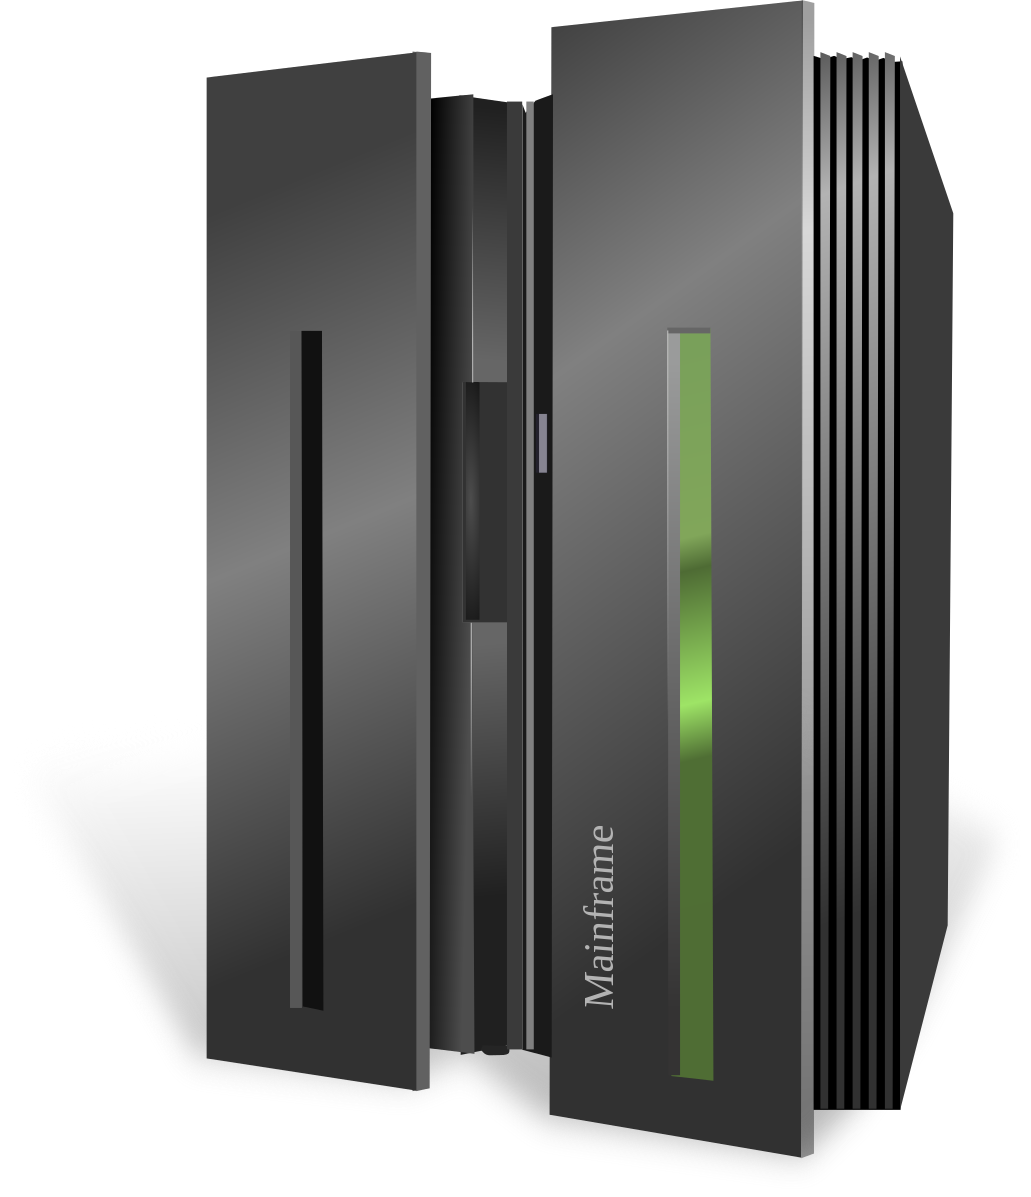 Difference Between Supercomputer and Mainframe Computer